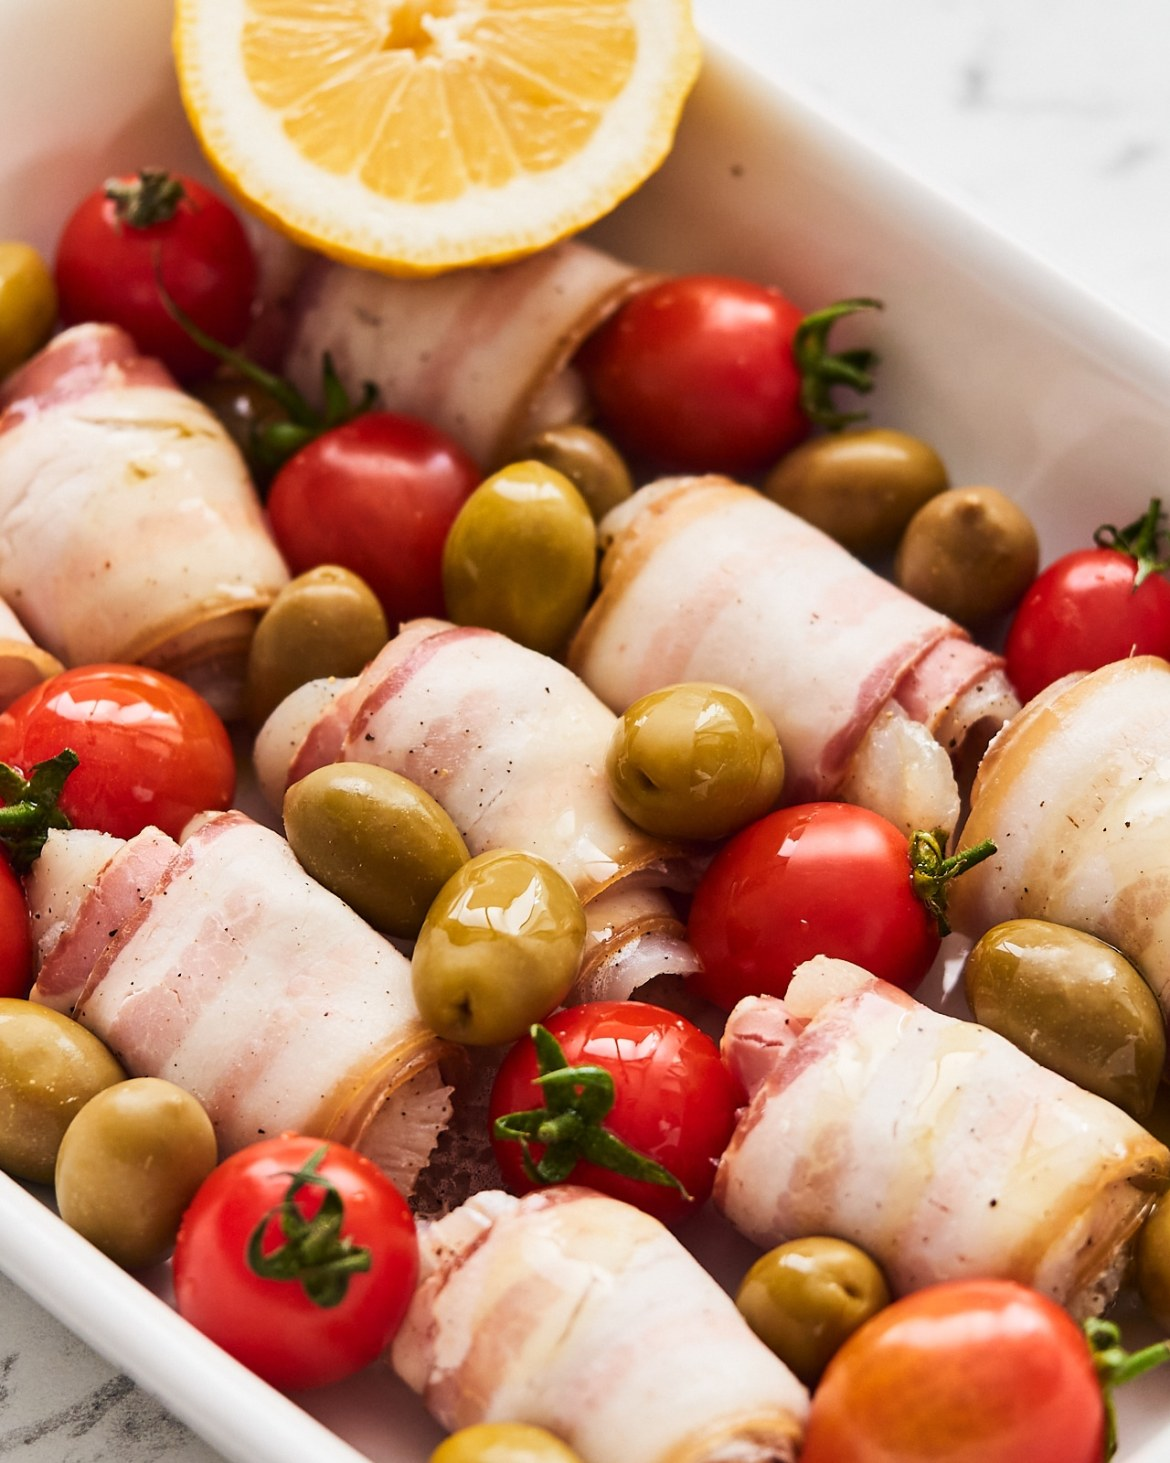 cod and bacon wraps with olives and tomatoes